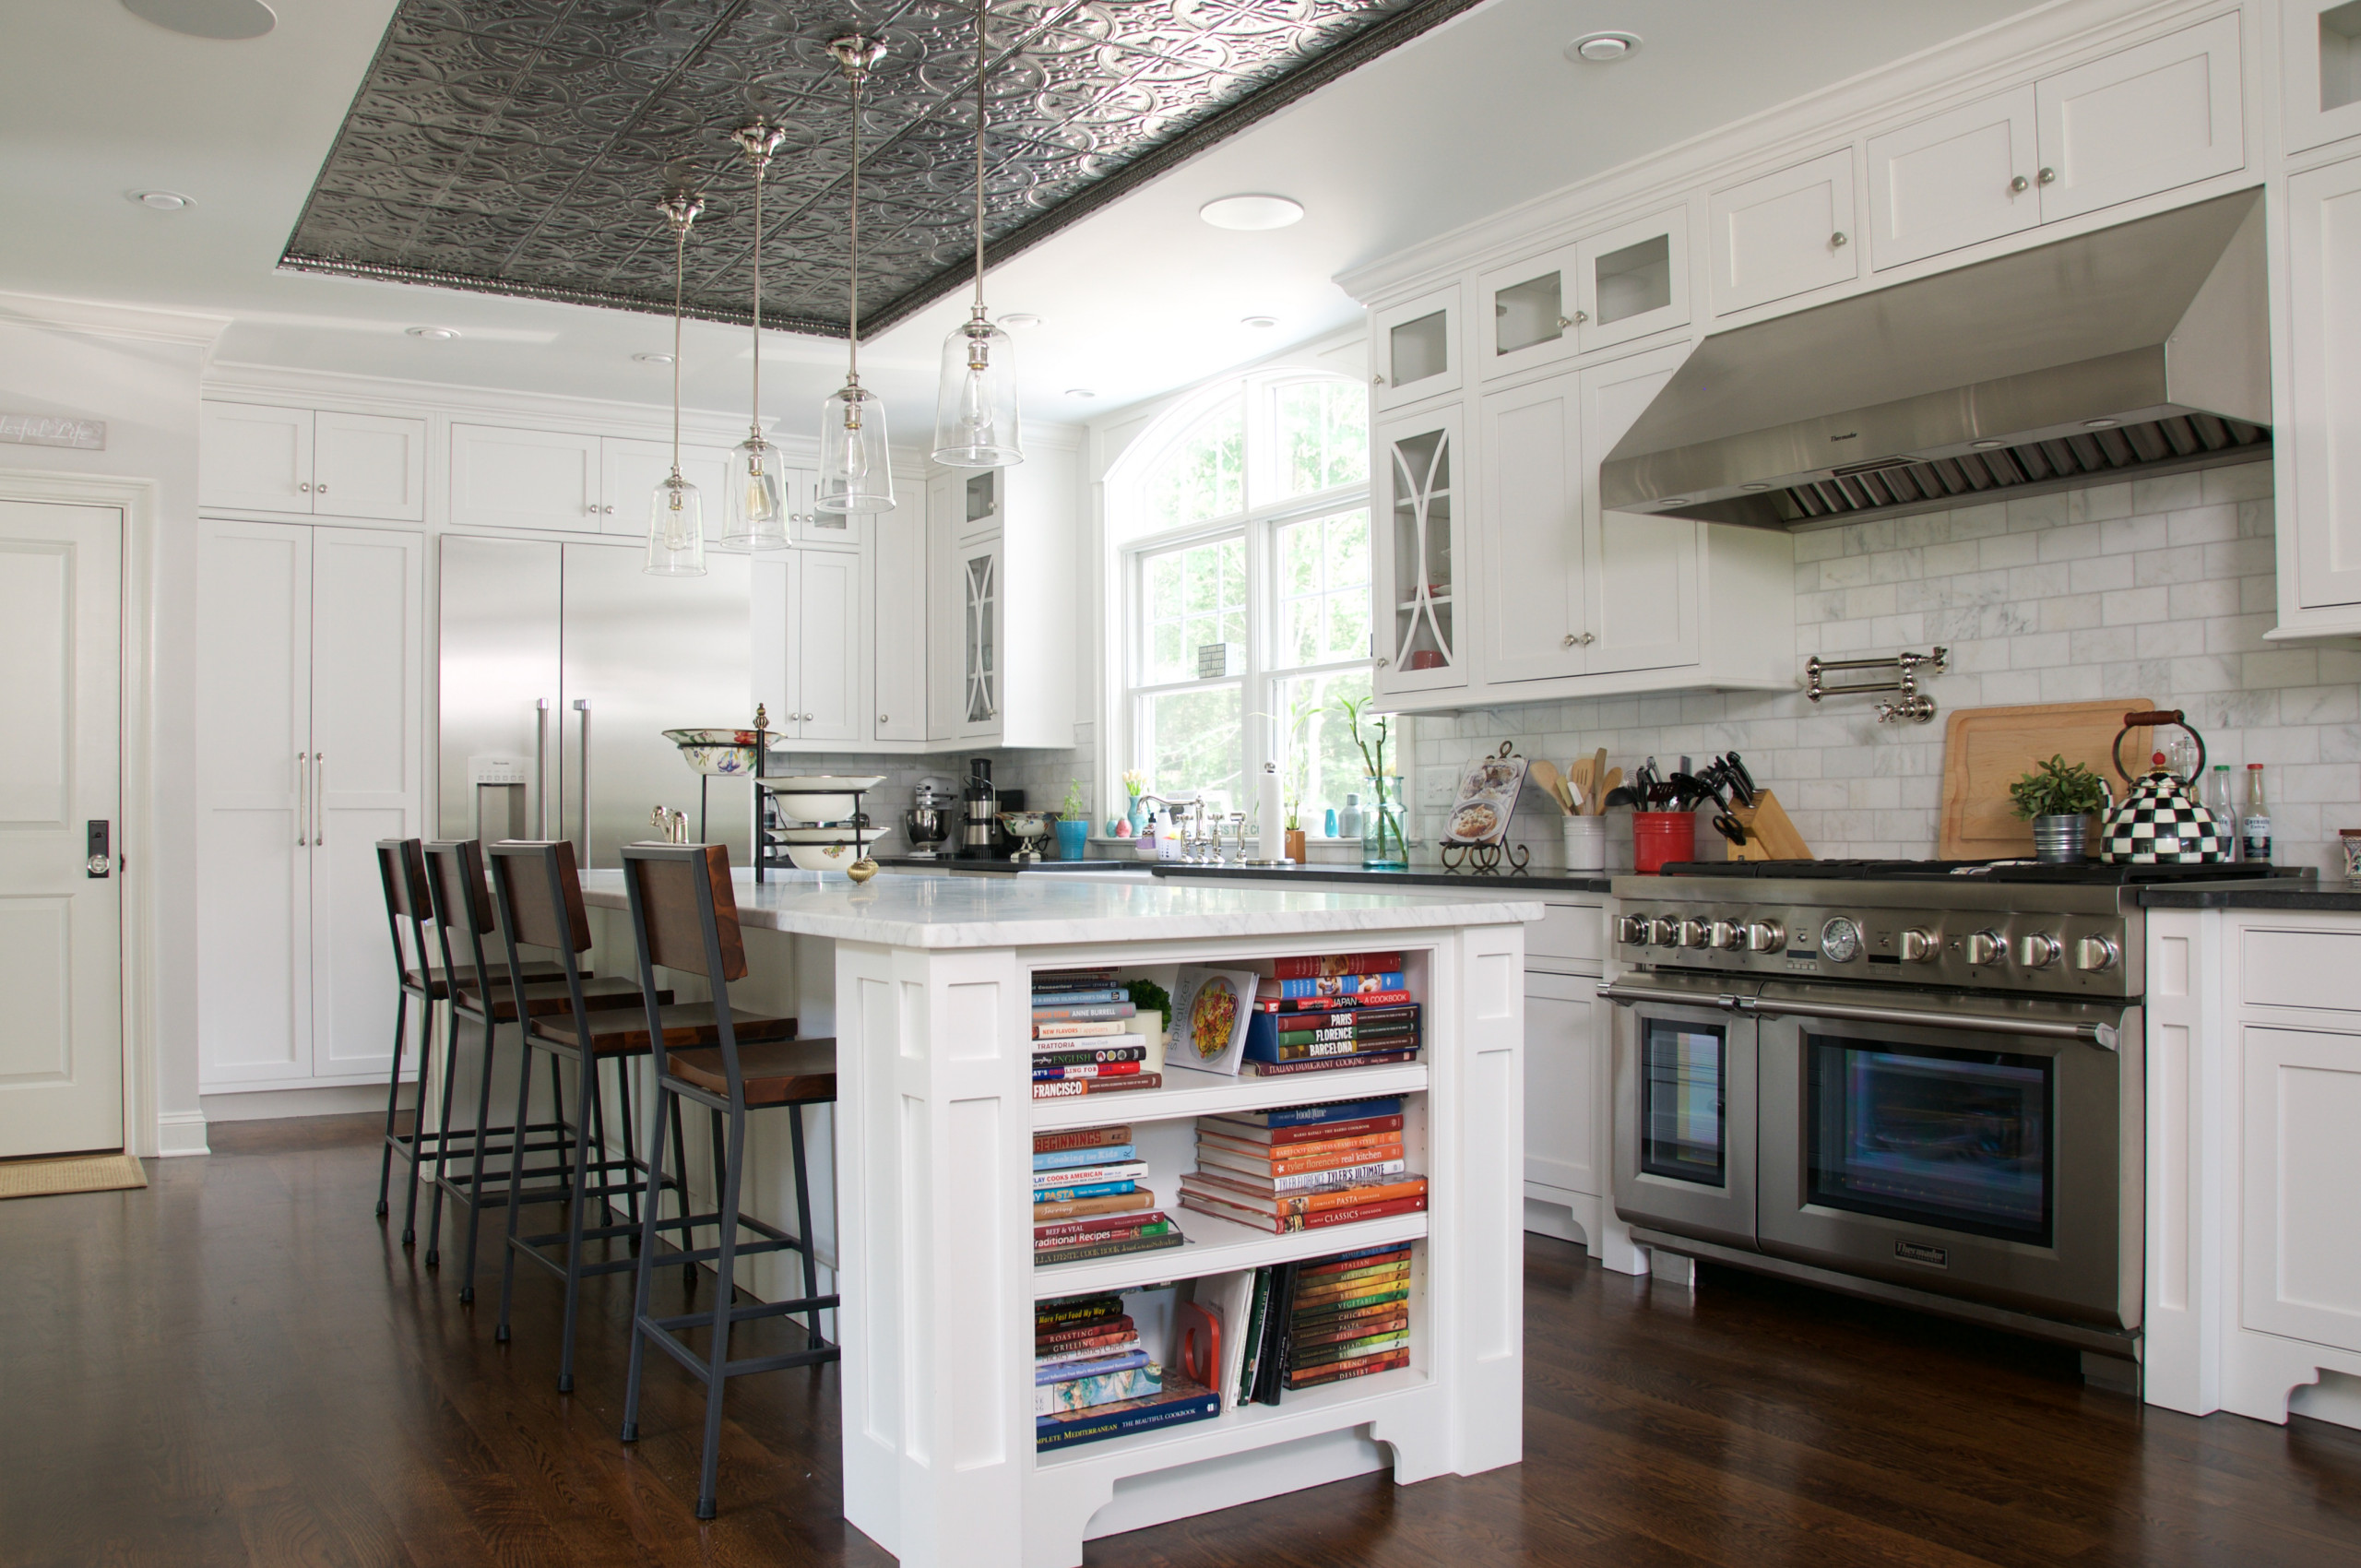 75 Beautiful Kitchen With Black Countertops Pictures Ideas November 2020 Houzz